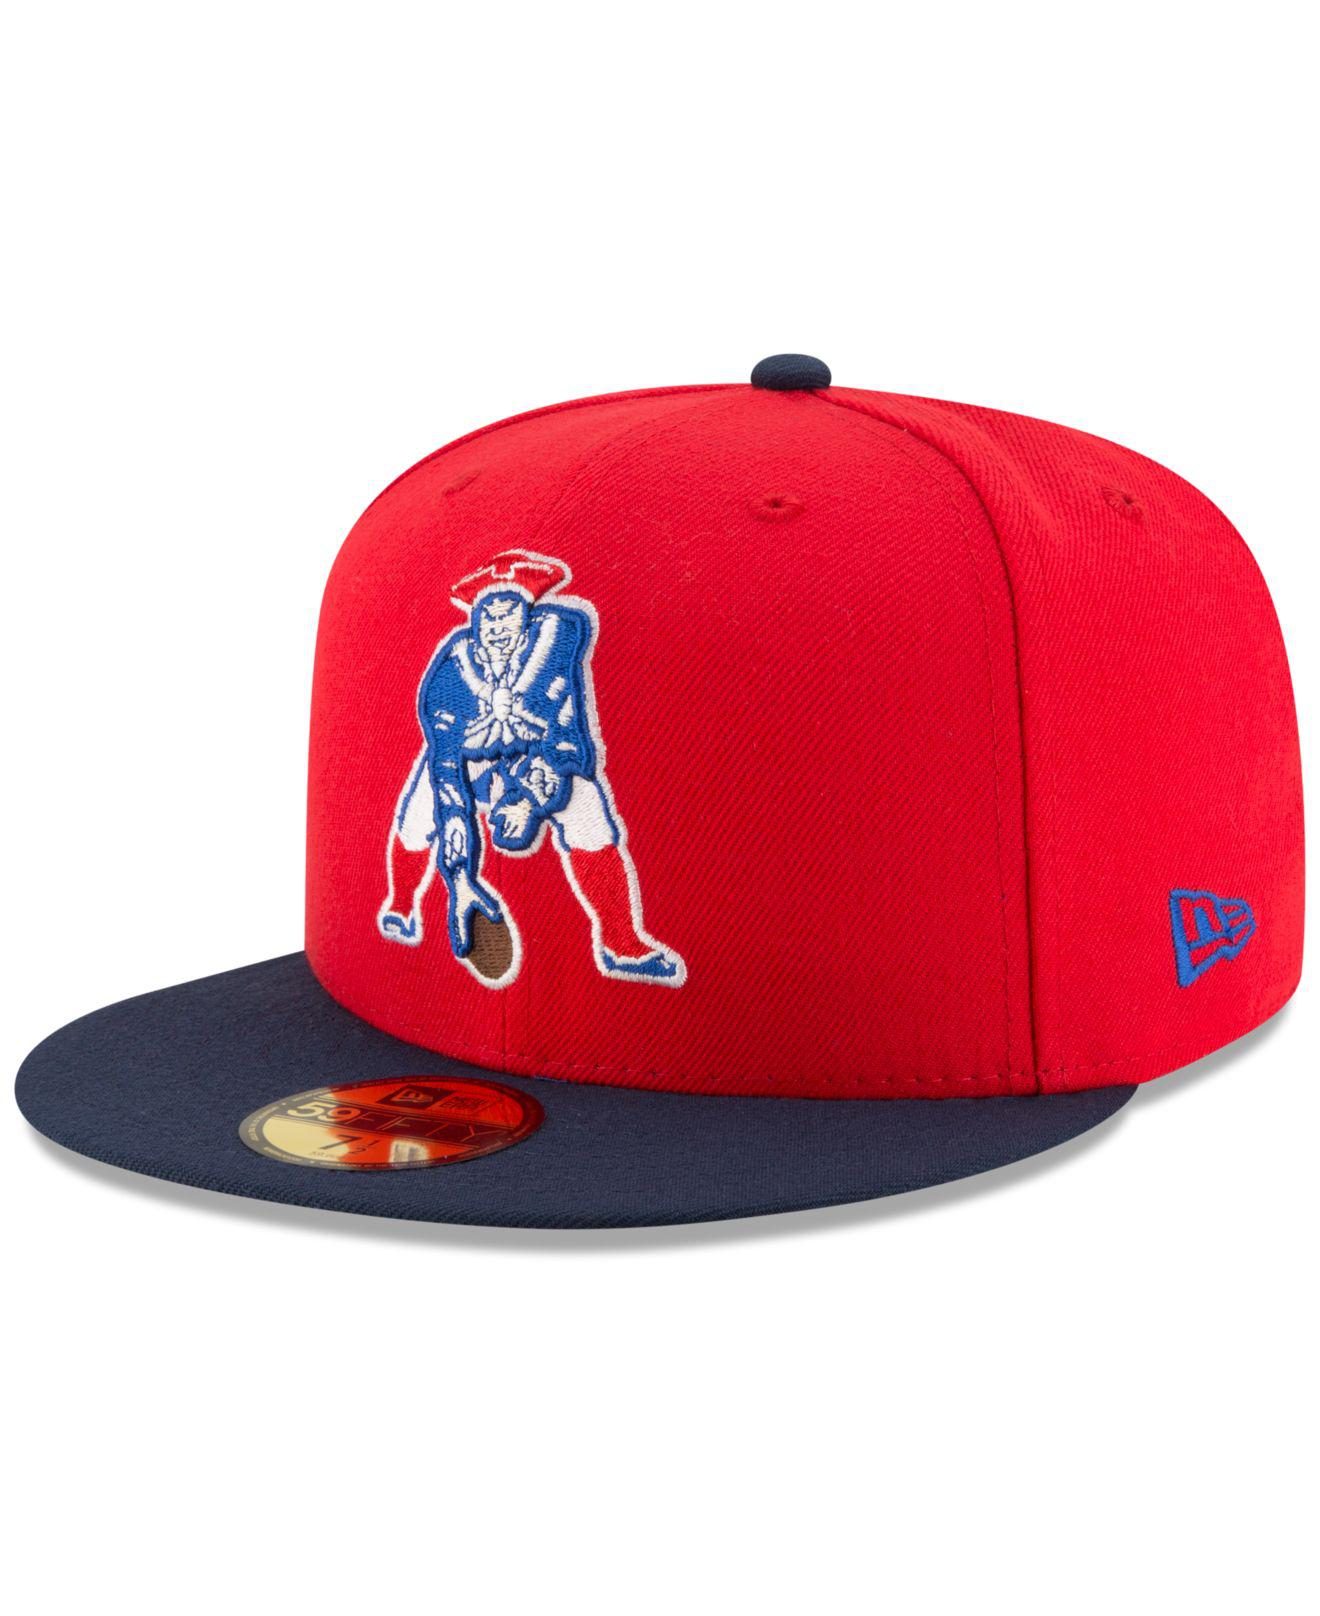 Lyst - KTZ New England Patriots Team Basic 59fifty Cap in Red for Men 4e4ca6c7c